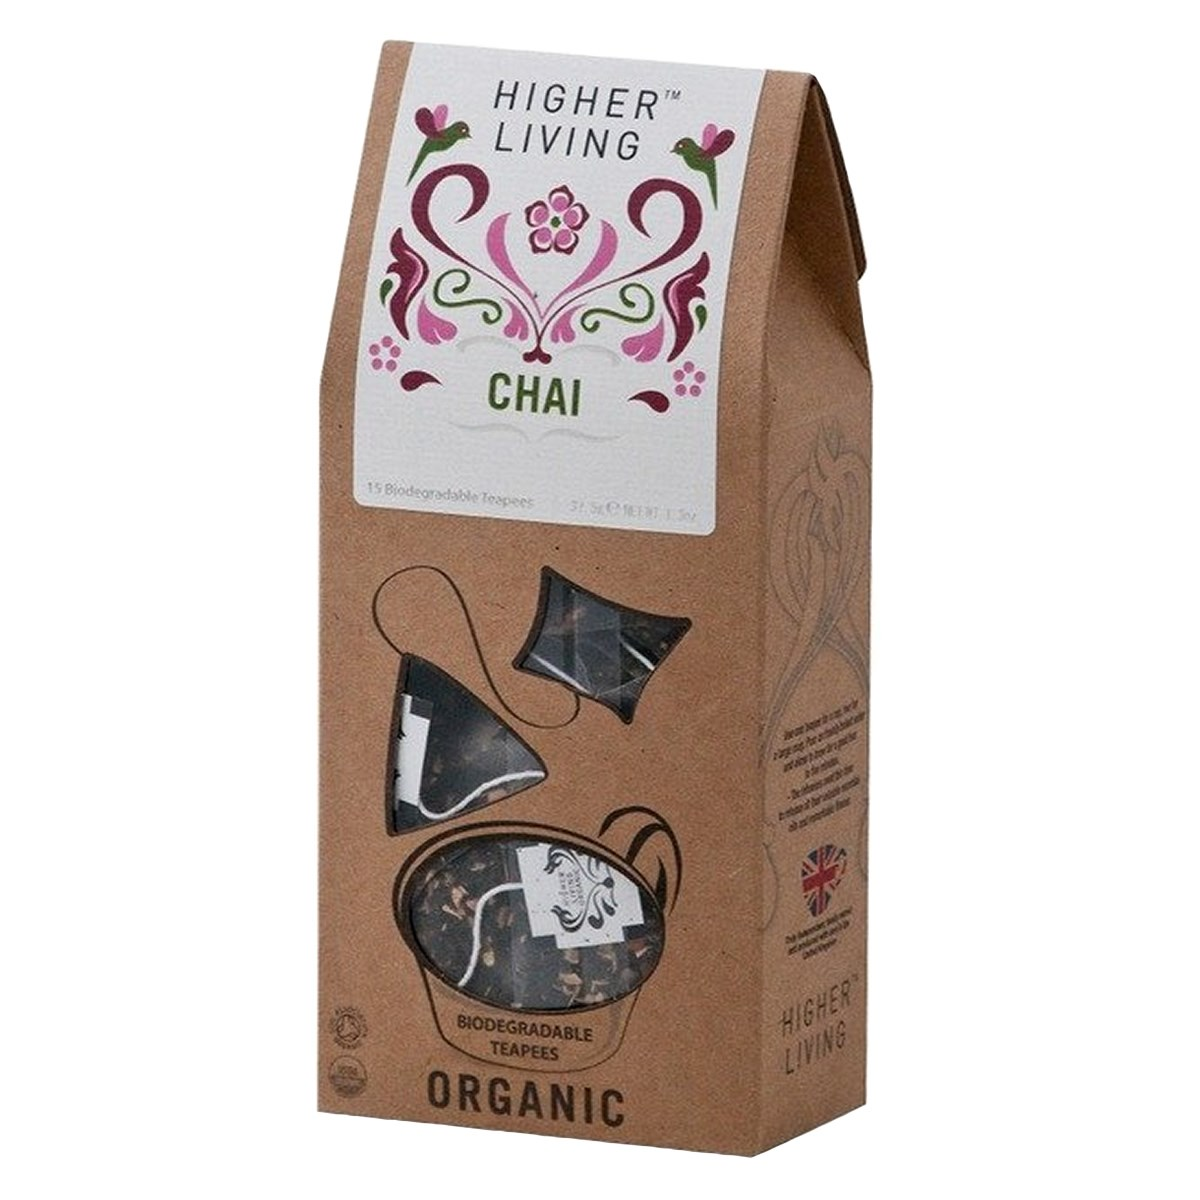 Higher Living Organic Chai Pyramid Tea